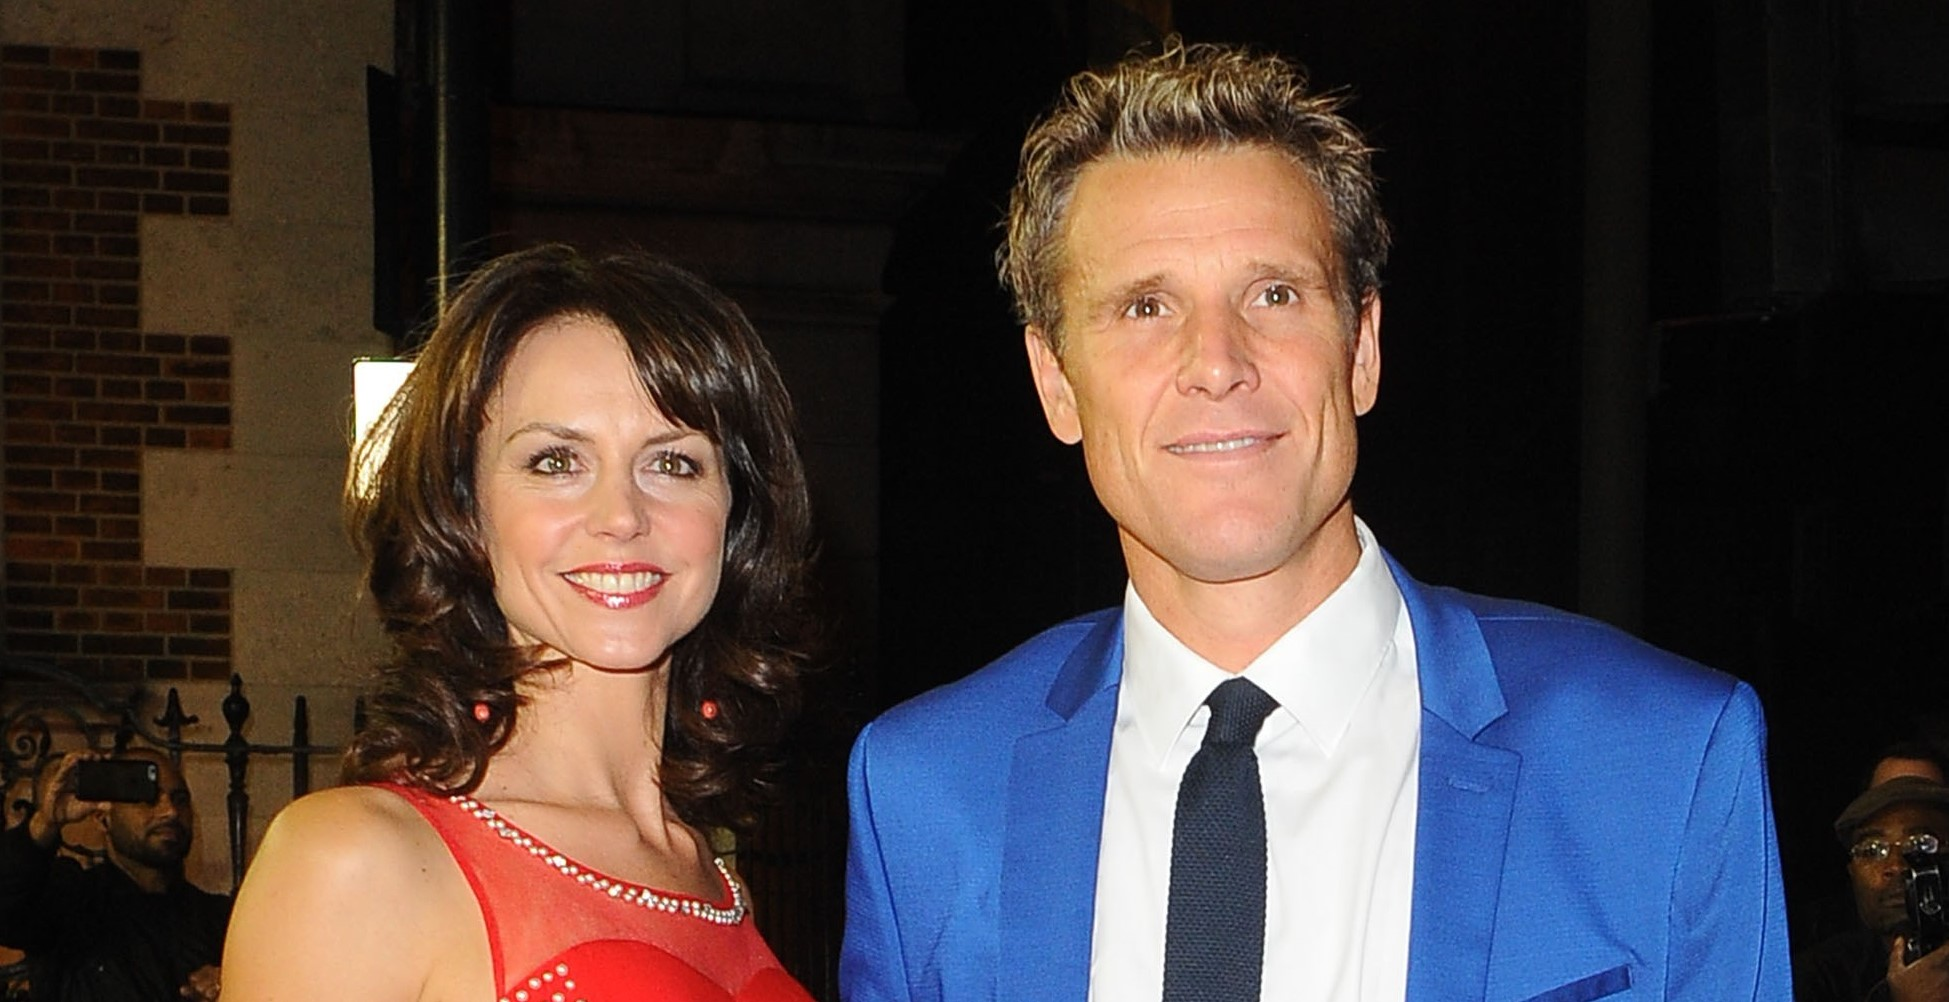 James Cracknell 'wants to do Strictly after splitting from wife who banned him from doing show'